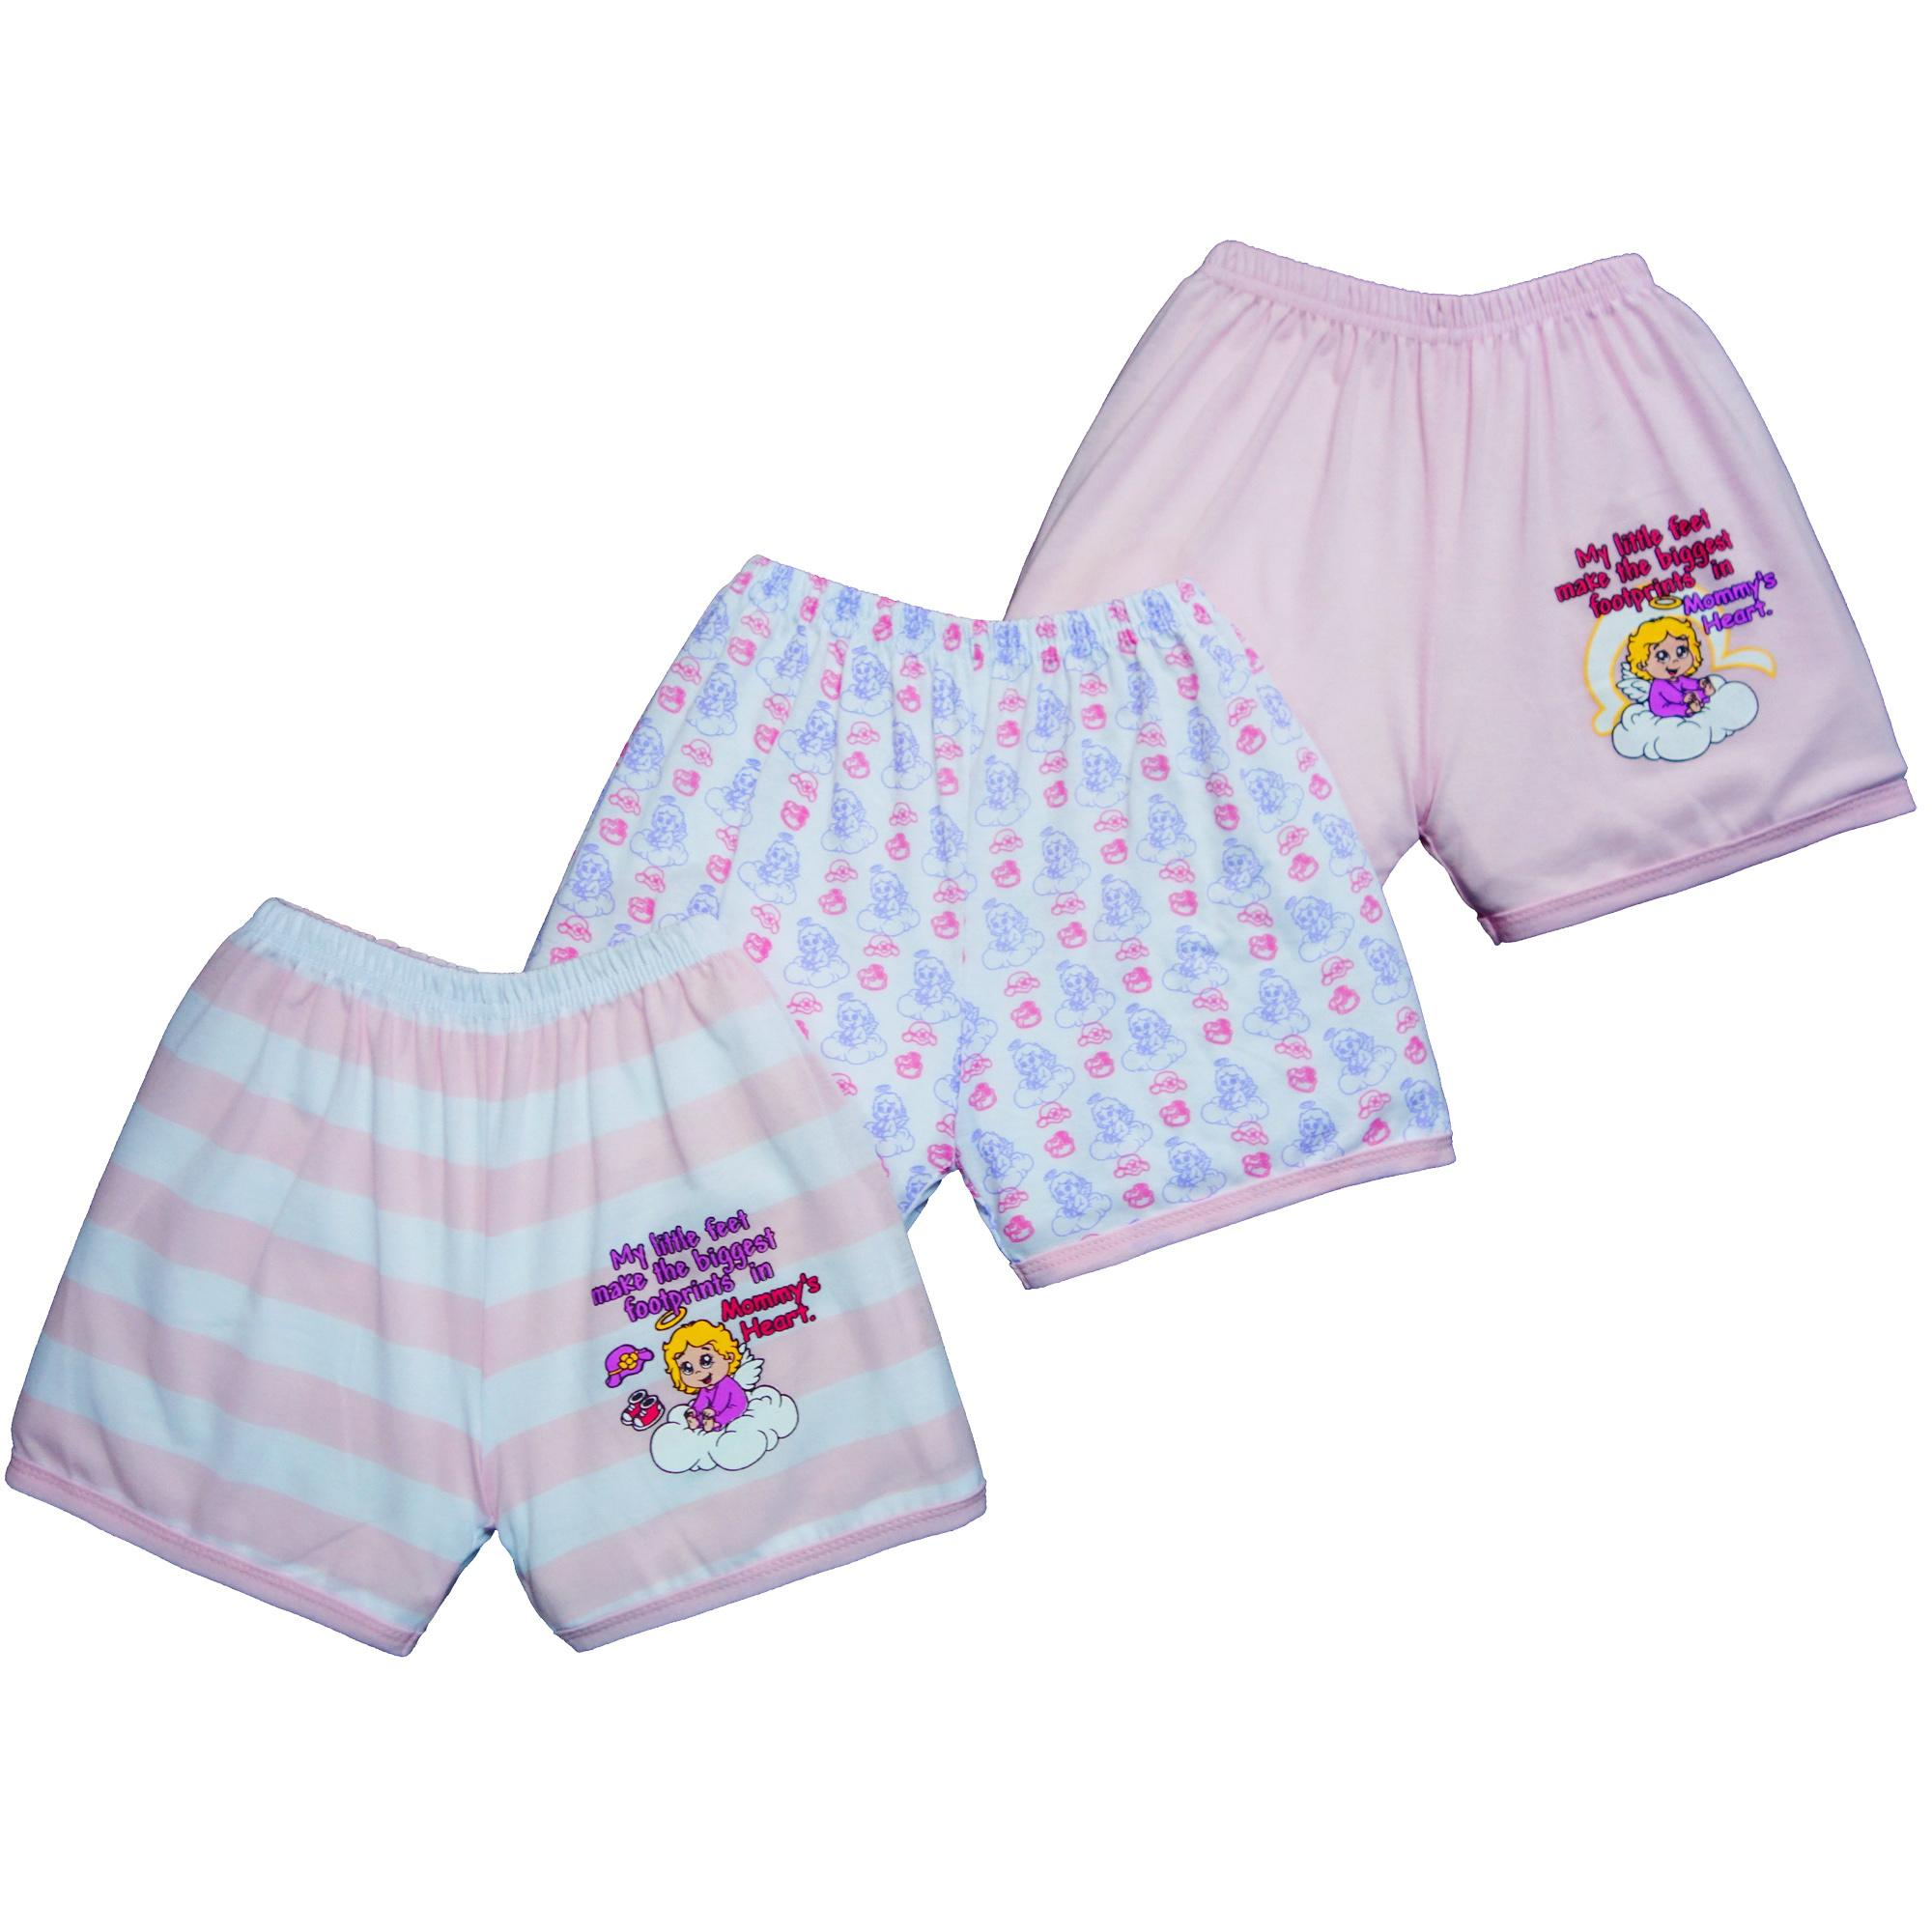 b6ced6f731a3 Froshie 3-piece Baby Cotton Shorts (My little feet make the biggest  footprints in